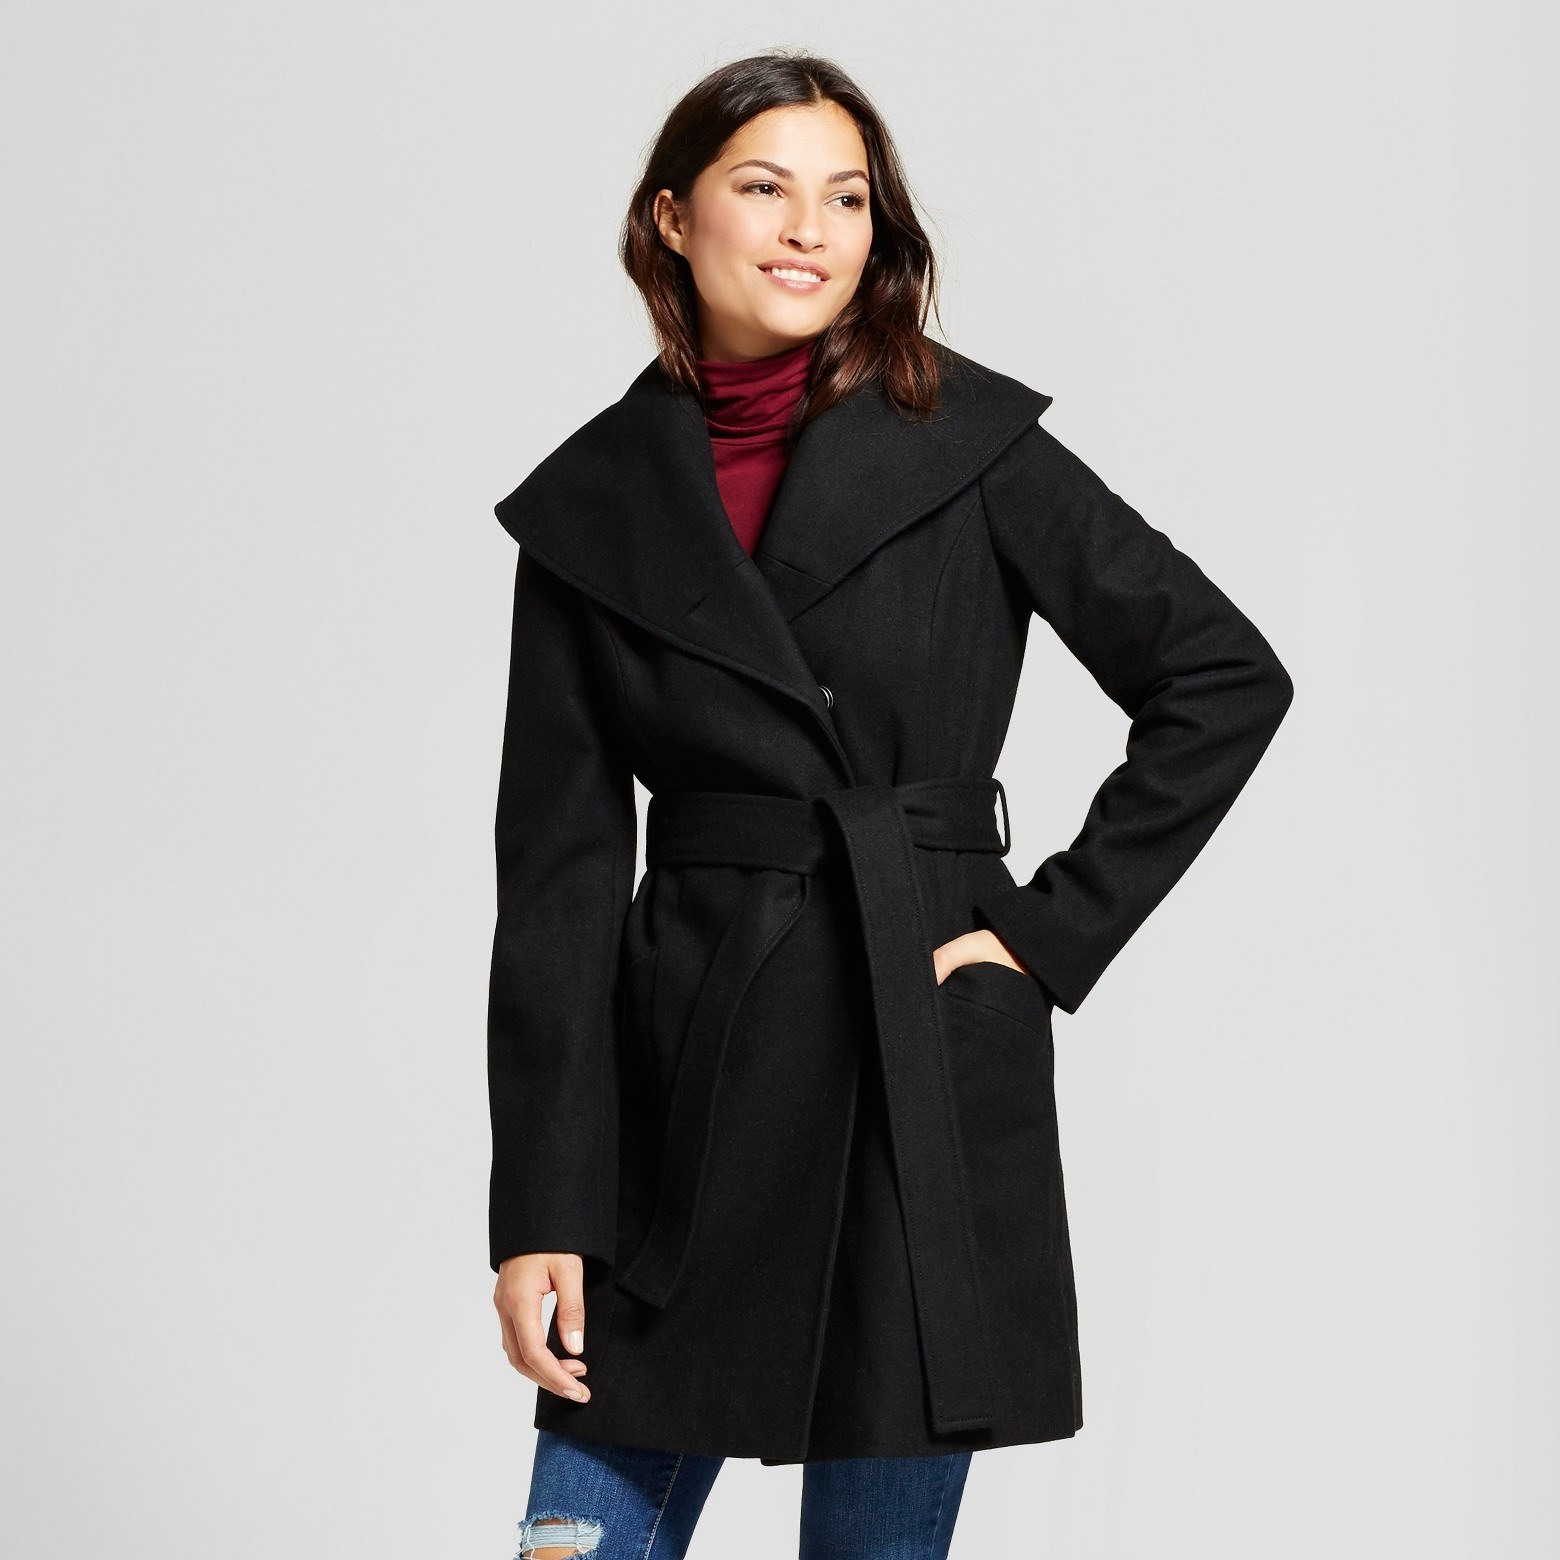 34 Of The Best Places To Buy Coats And Jackets Online